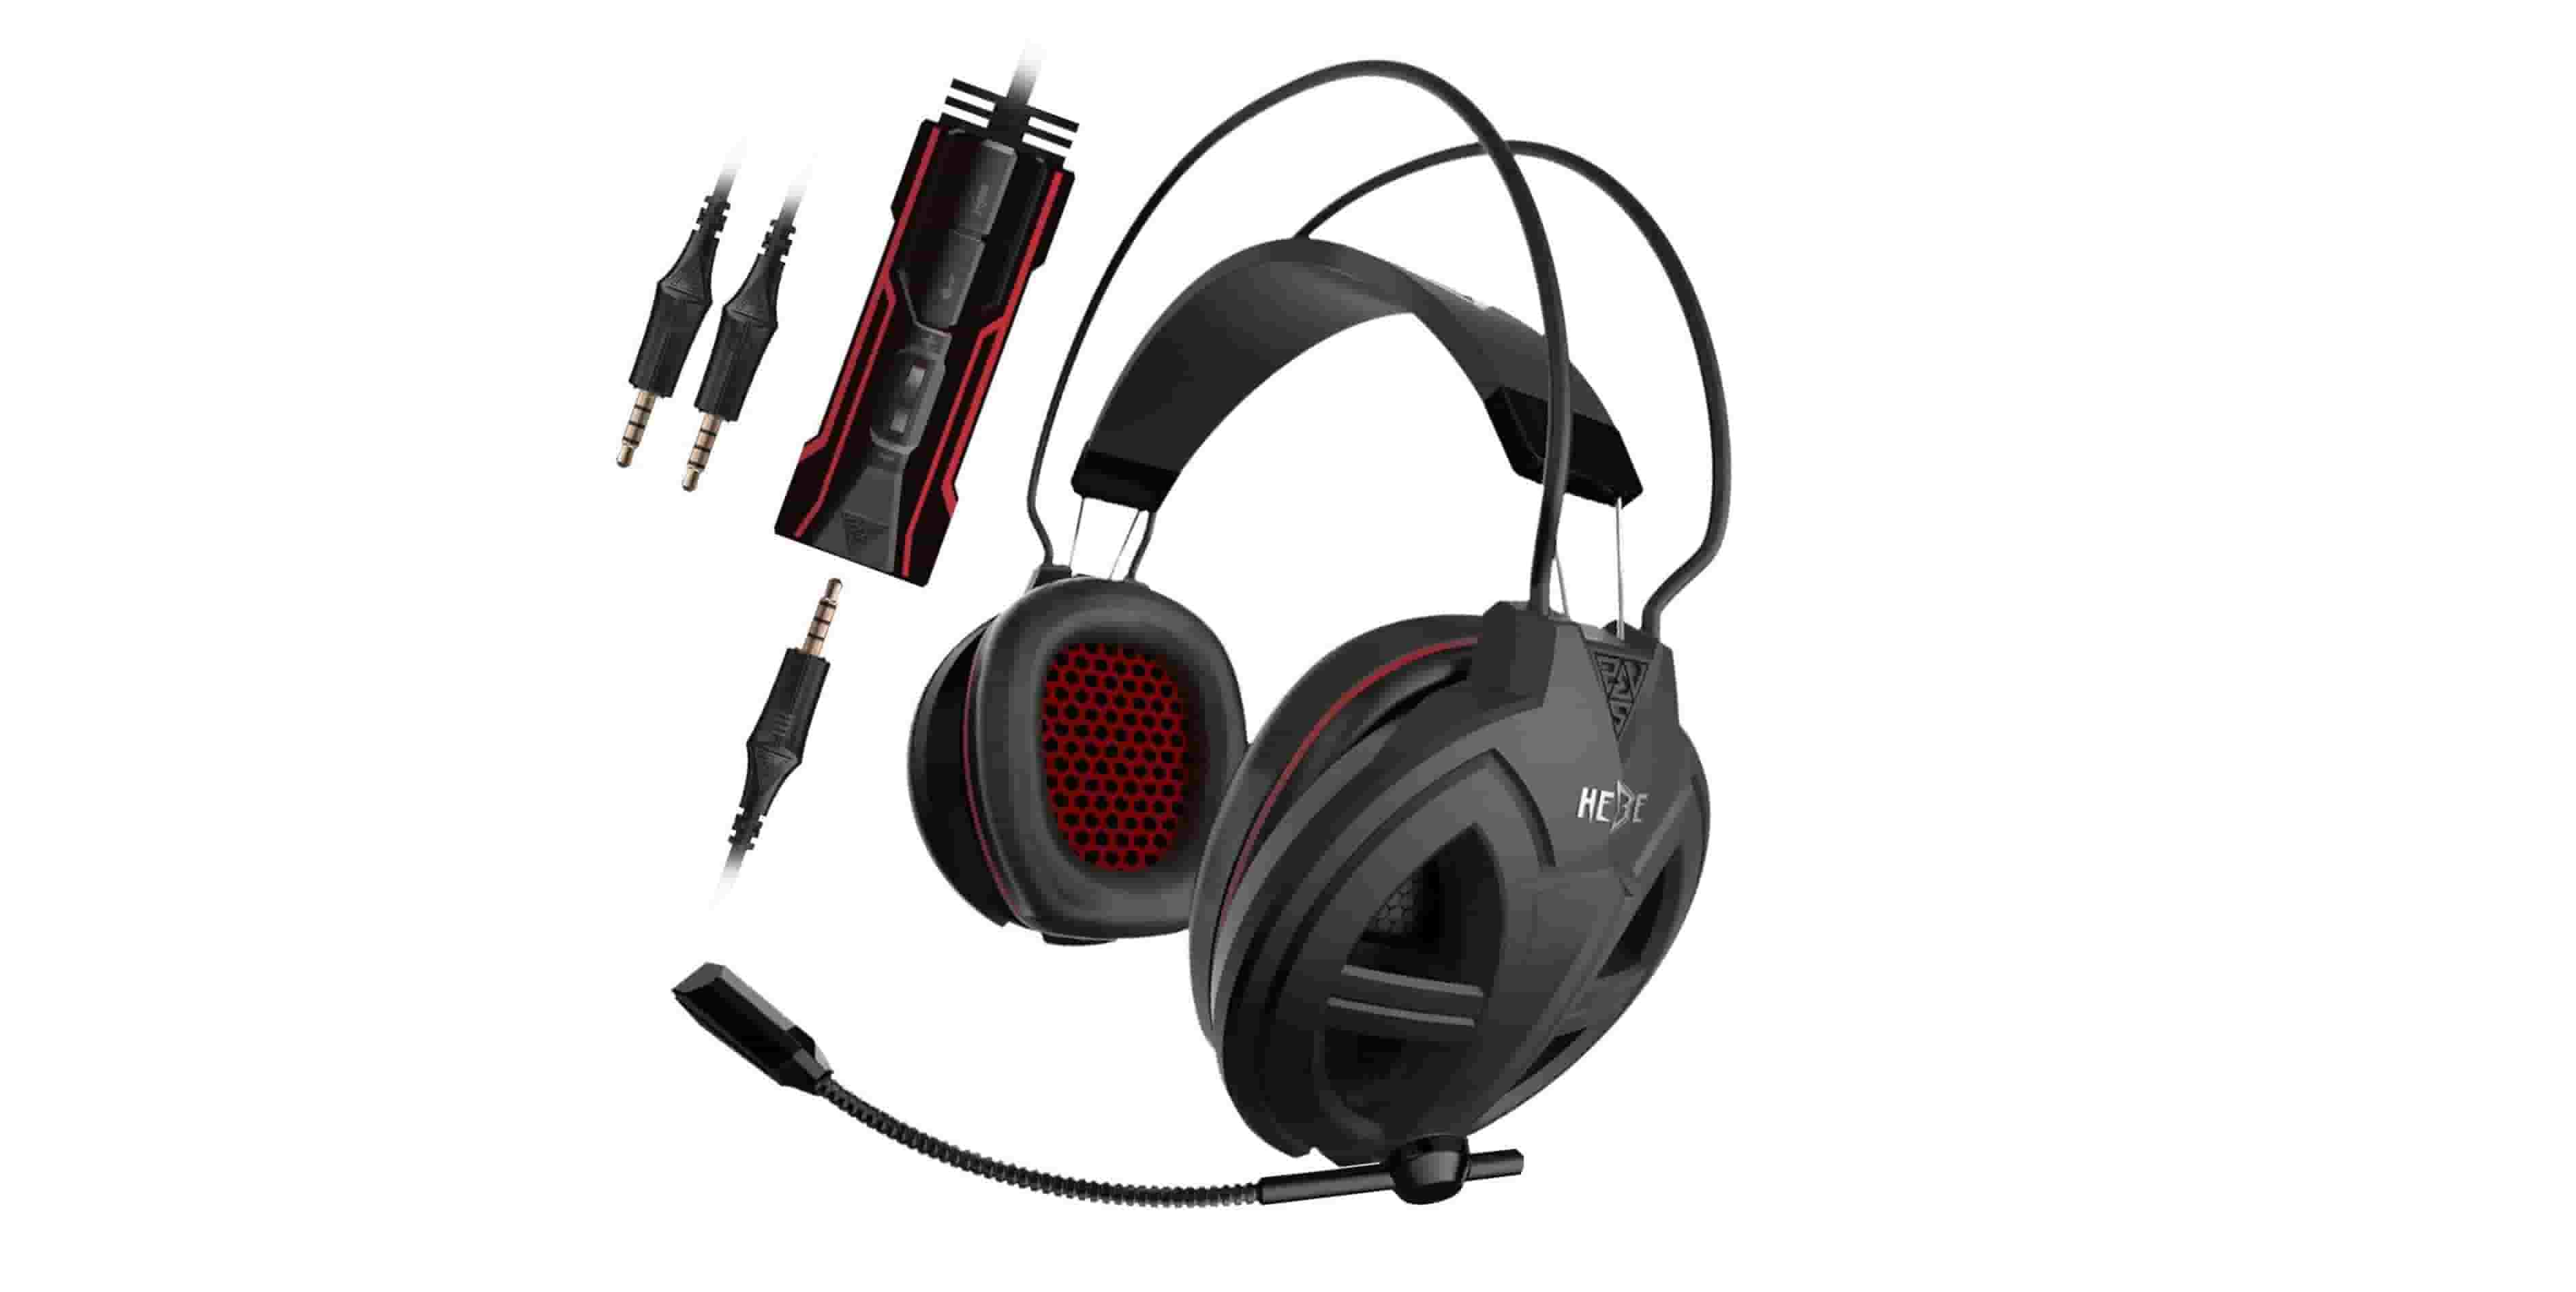 GAMDIAS GHS3300 Hebe V2 Gaming Headset with 3.5mm Jack